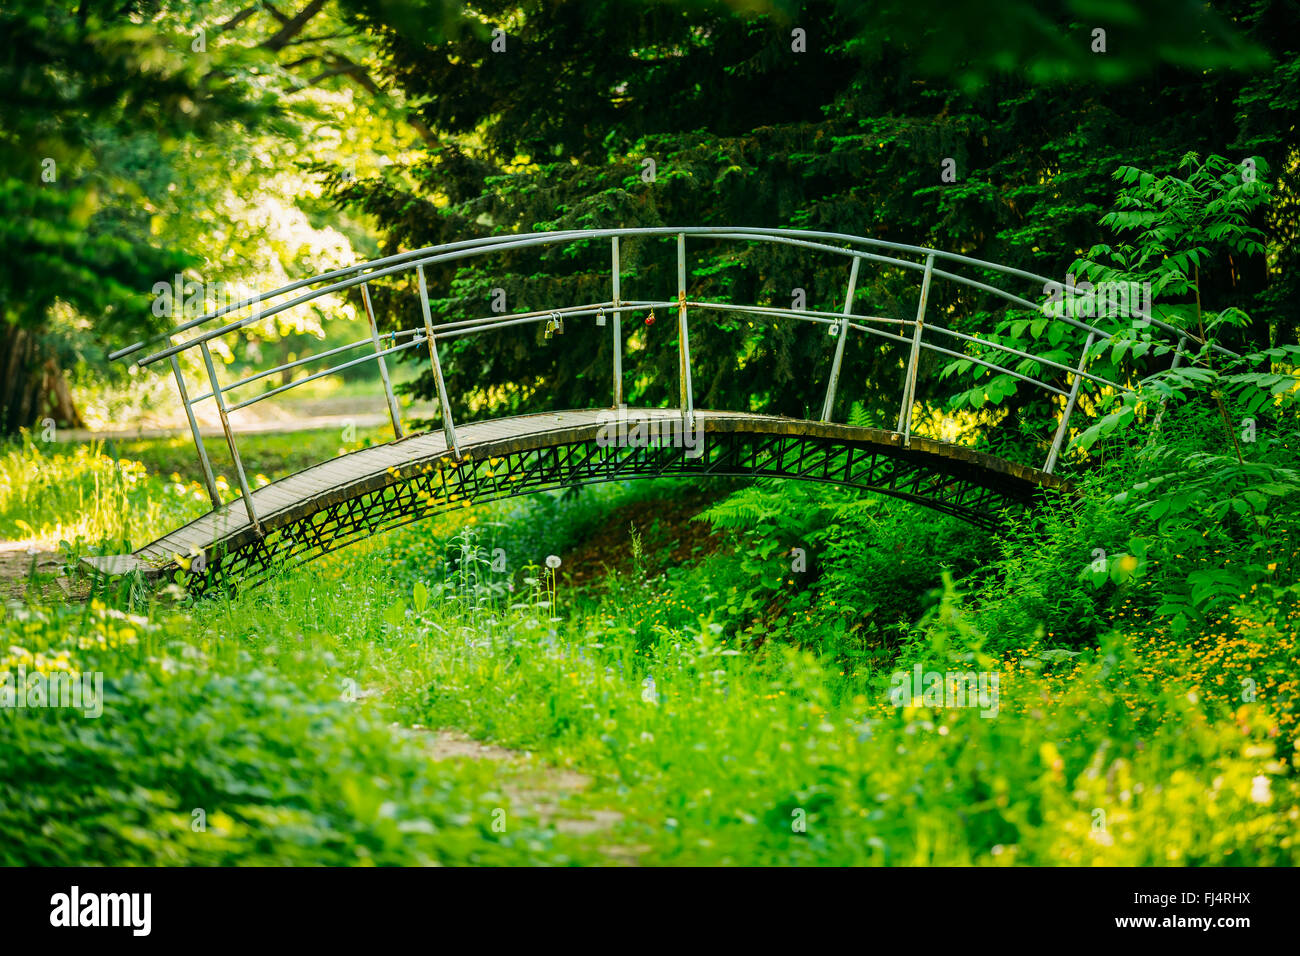 Beautiful old small decorative bridge in summer garden park forest on summer garage design, summer house design, simplicity design, summer pool design, summer stage design, summer fruit design, summer interior design, peony design, summer shoes design, sunset design, summer quilt design, summer border design, summer abstract background design, books design, family design, fall design, summer holidays design, summer outdoor design, summer beach design, summer graphic design,